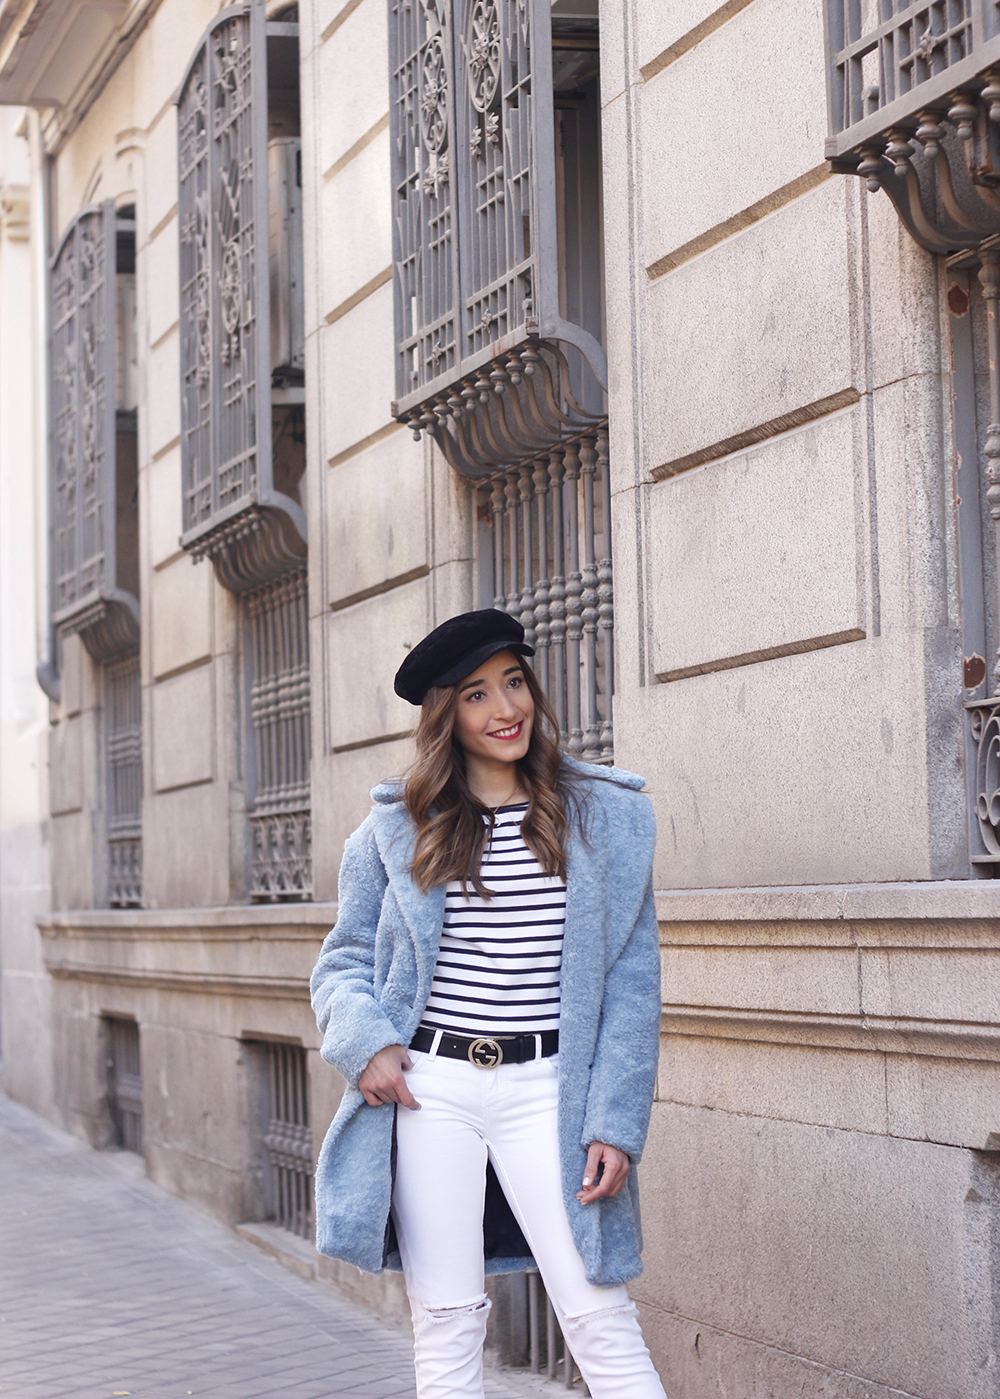 blue fur coat stripes white ripped jeans givenchy bag navy cap fall outfit street style11